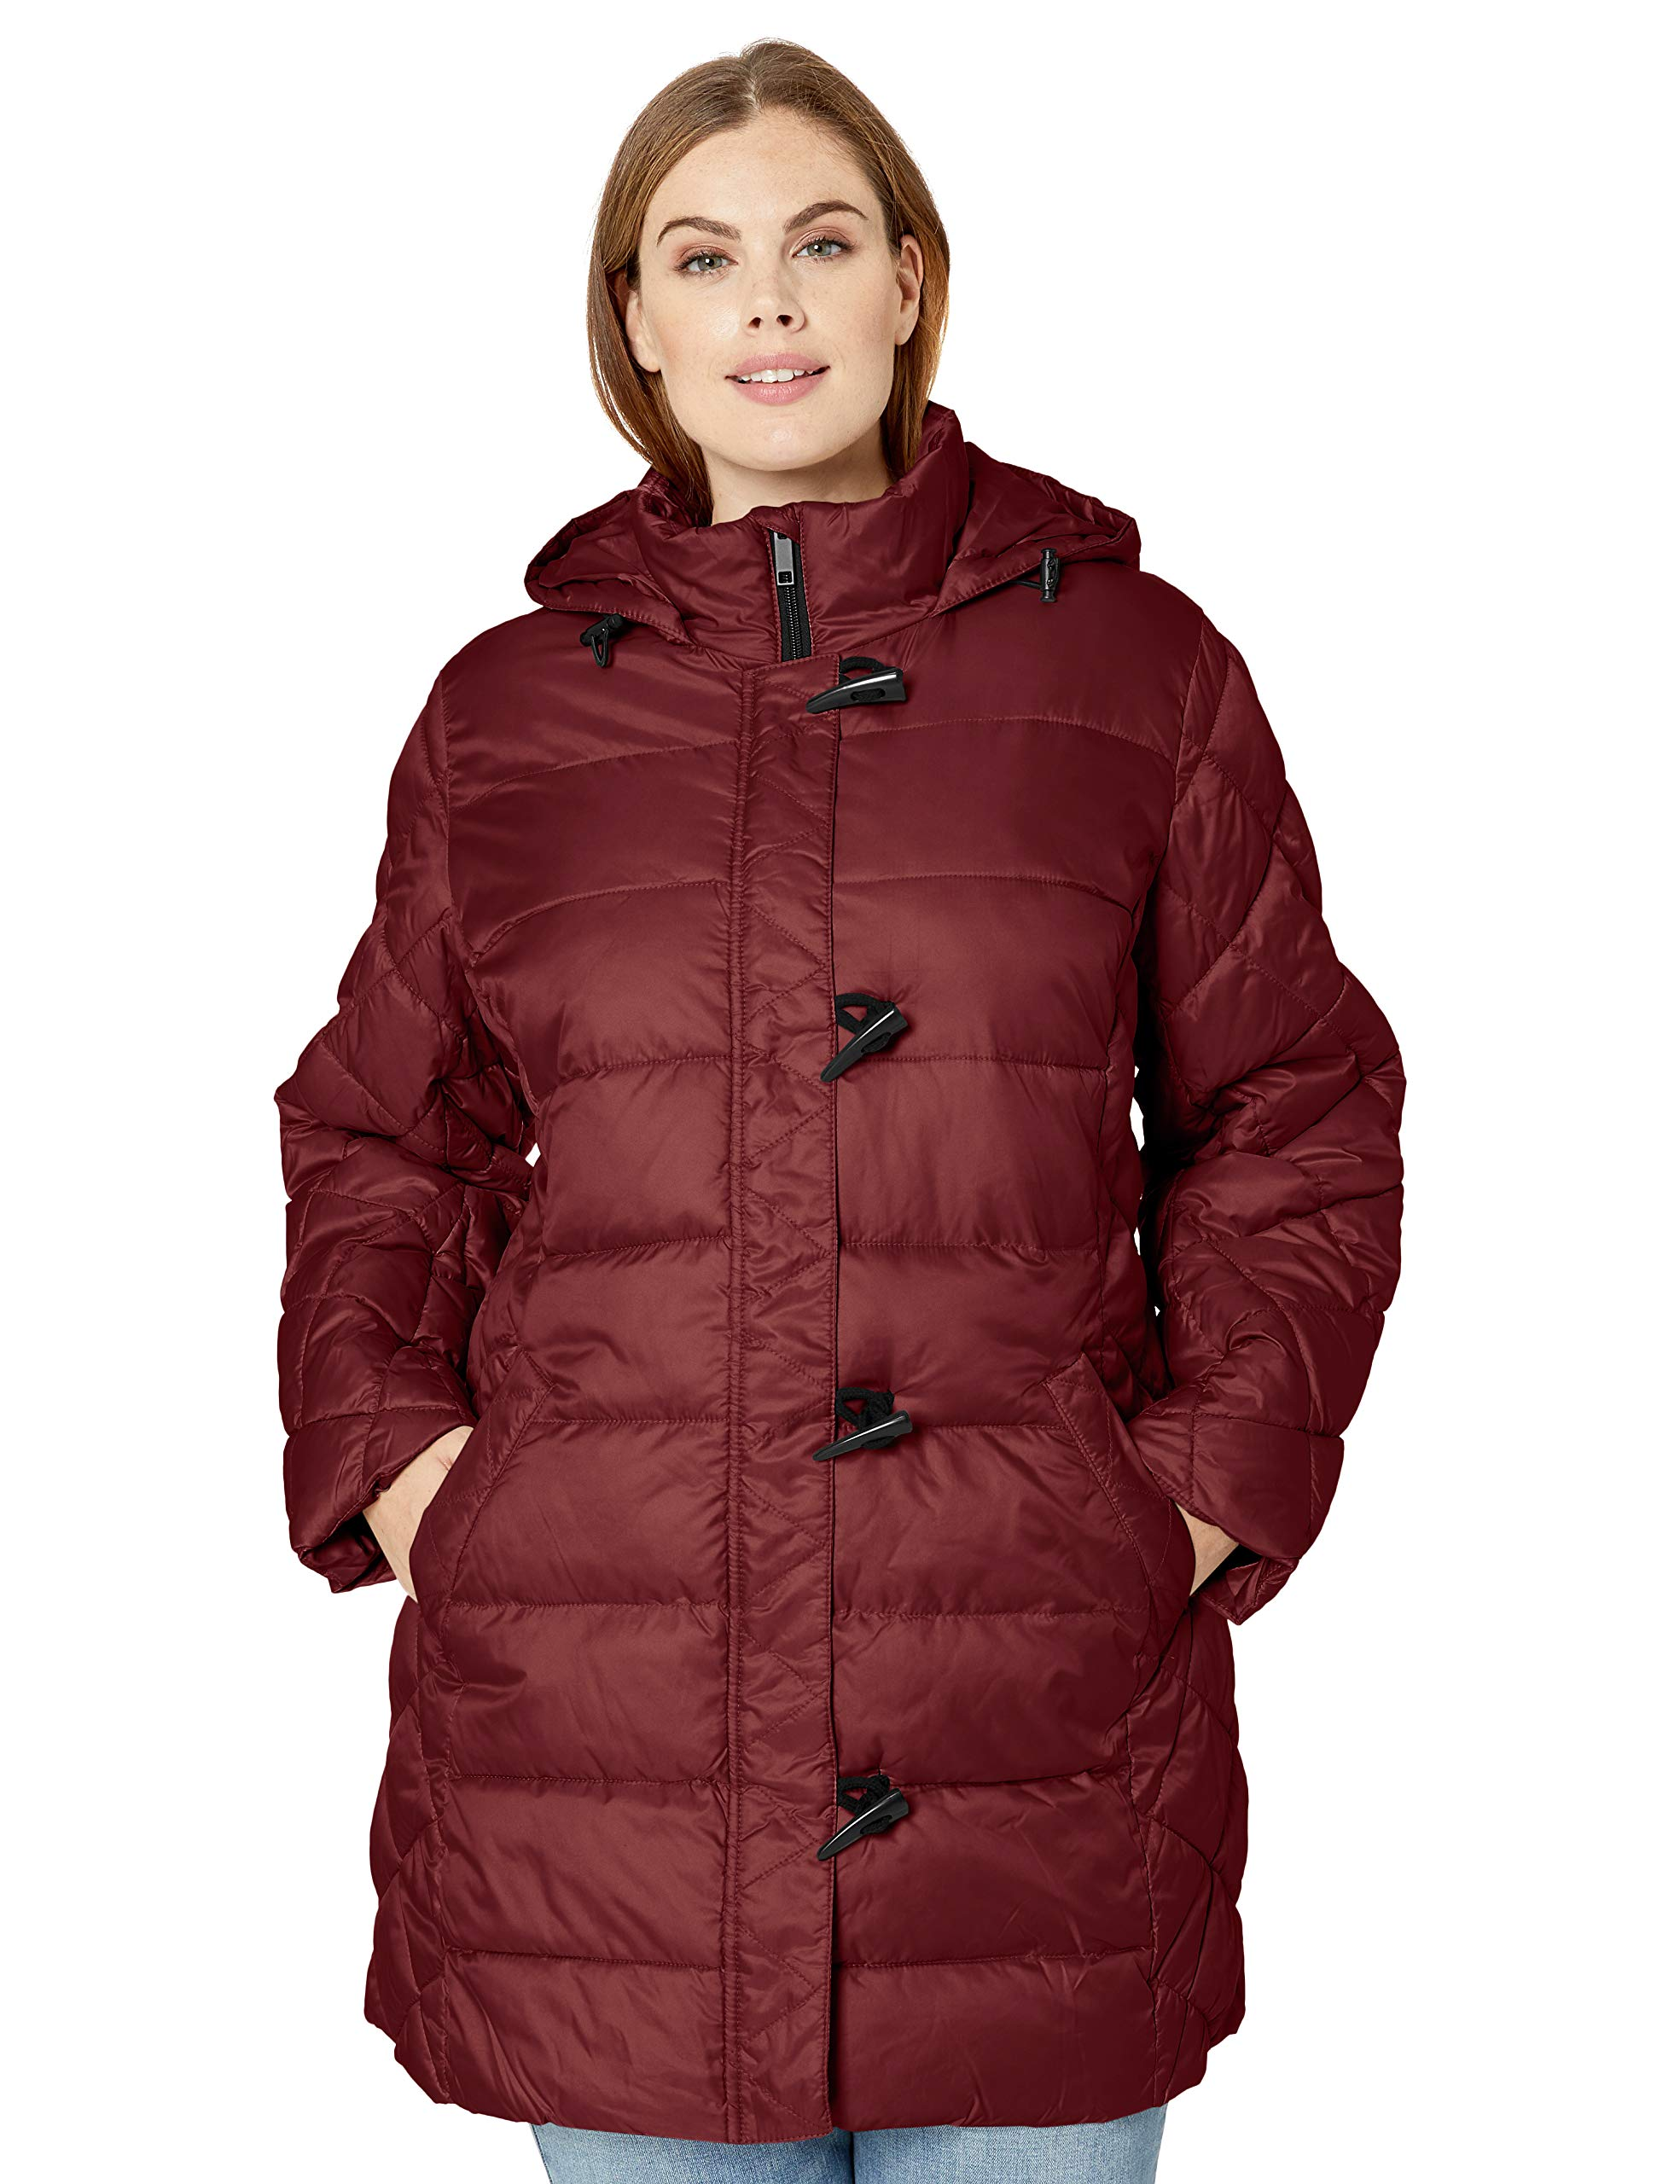 Big Chill Women's Multi-Quilted Puffer Coat with Hood, Burgundy, L by Big Chill